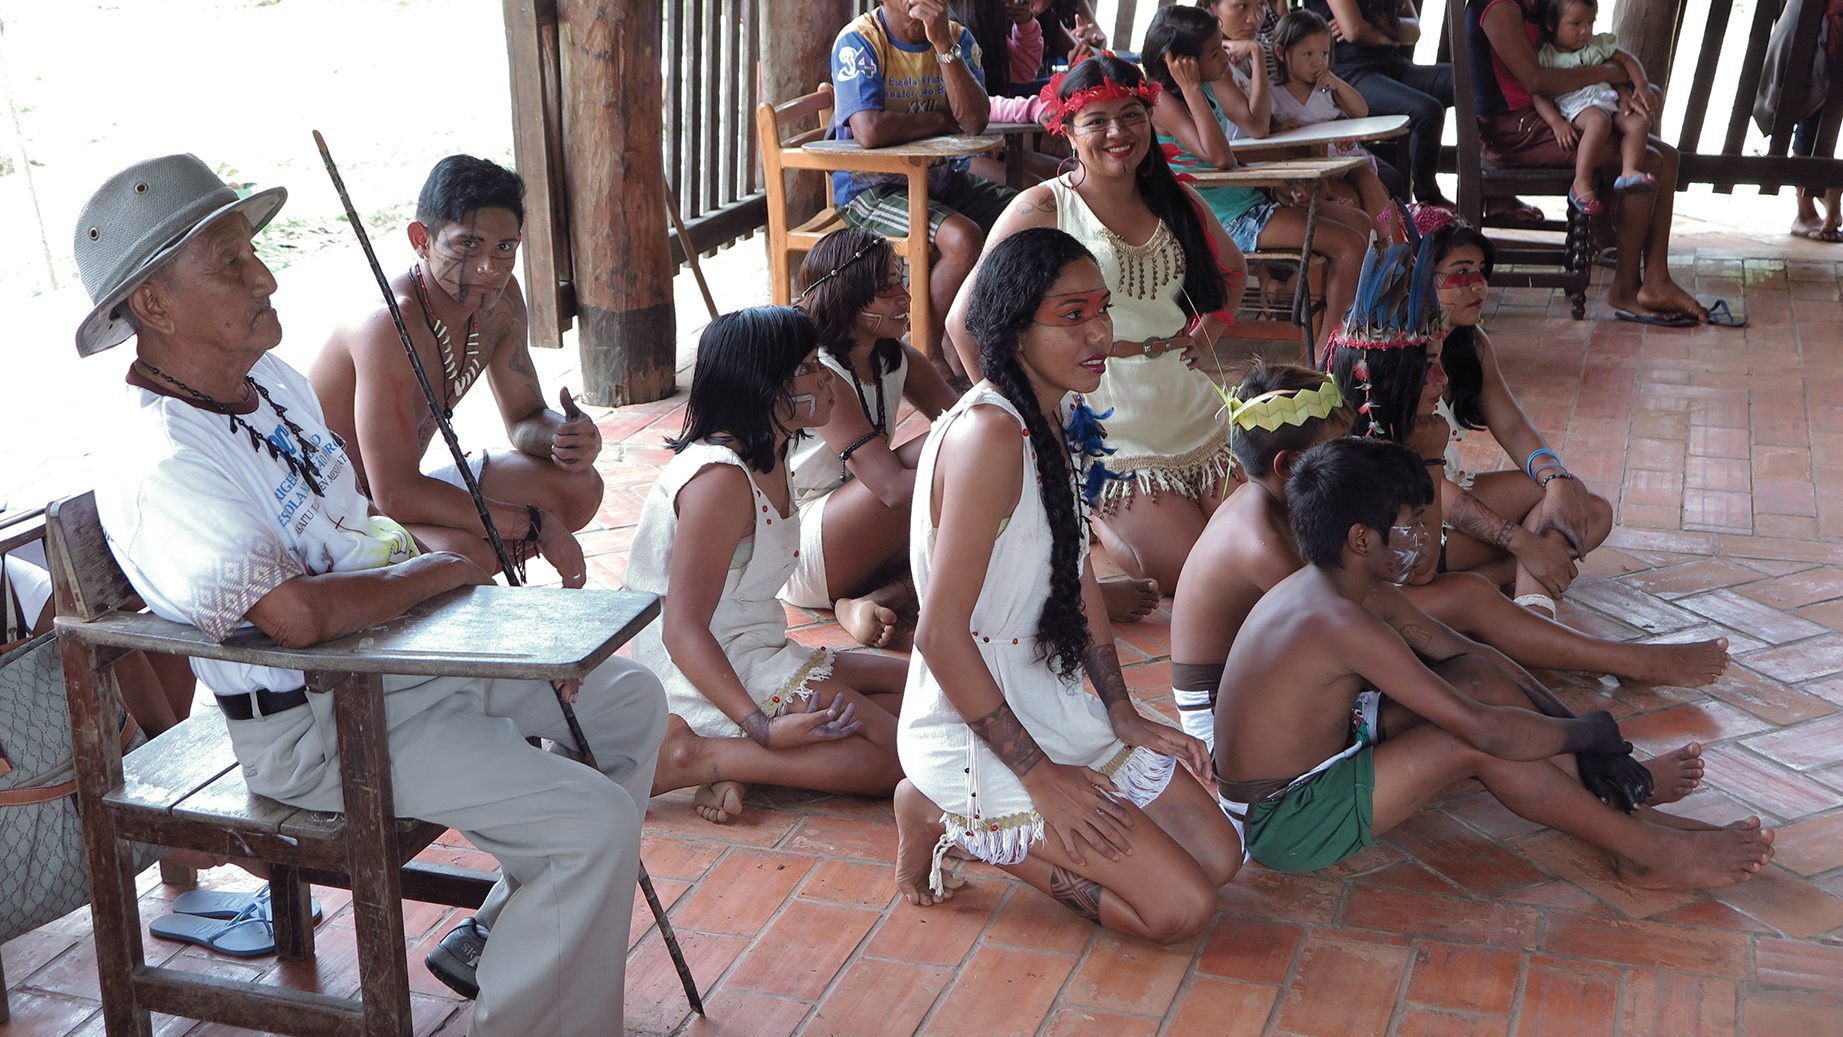 Tuxawa Donato,  a leader among the indigenous tribe, sits with Sateré Mawé youth in native dress.